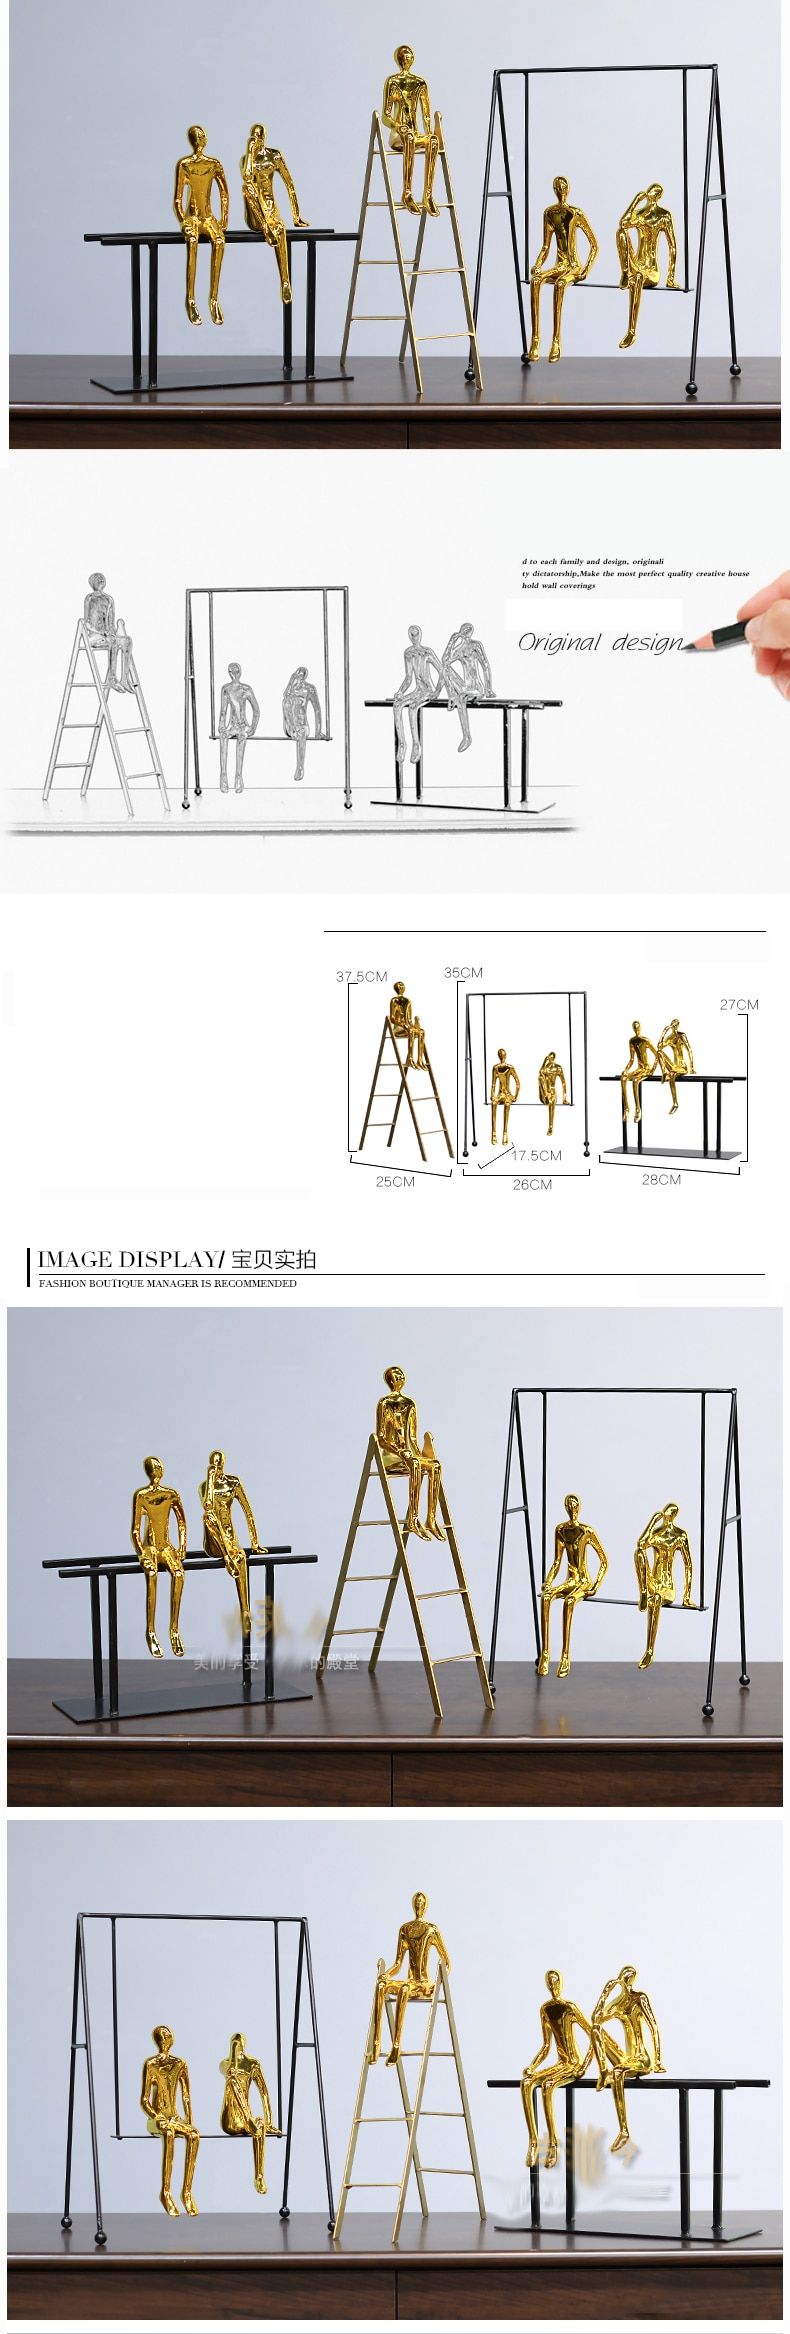 Two Abstract Golden Figures Sitting On The Parallel Bars Statue Home Crafts Room Decorative Objects Office Metal Sculpture Gift